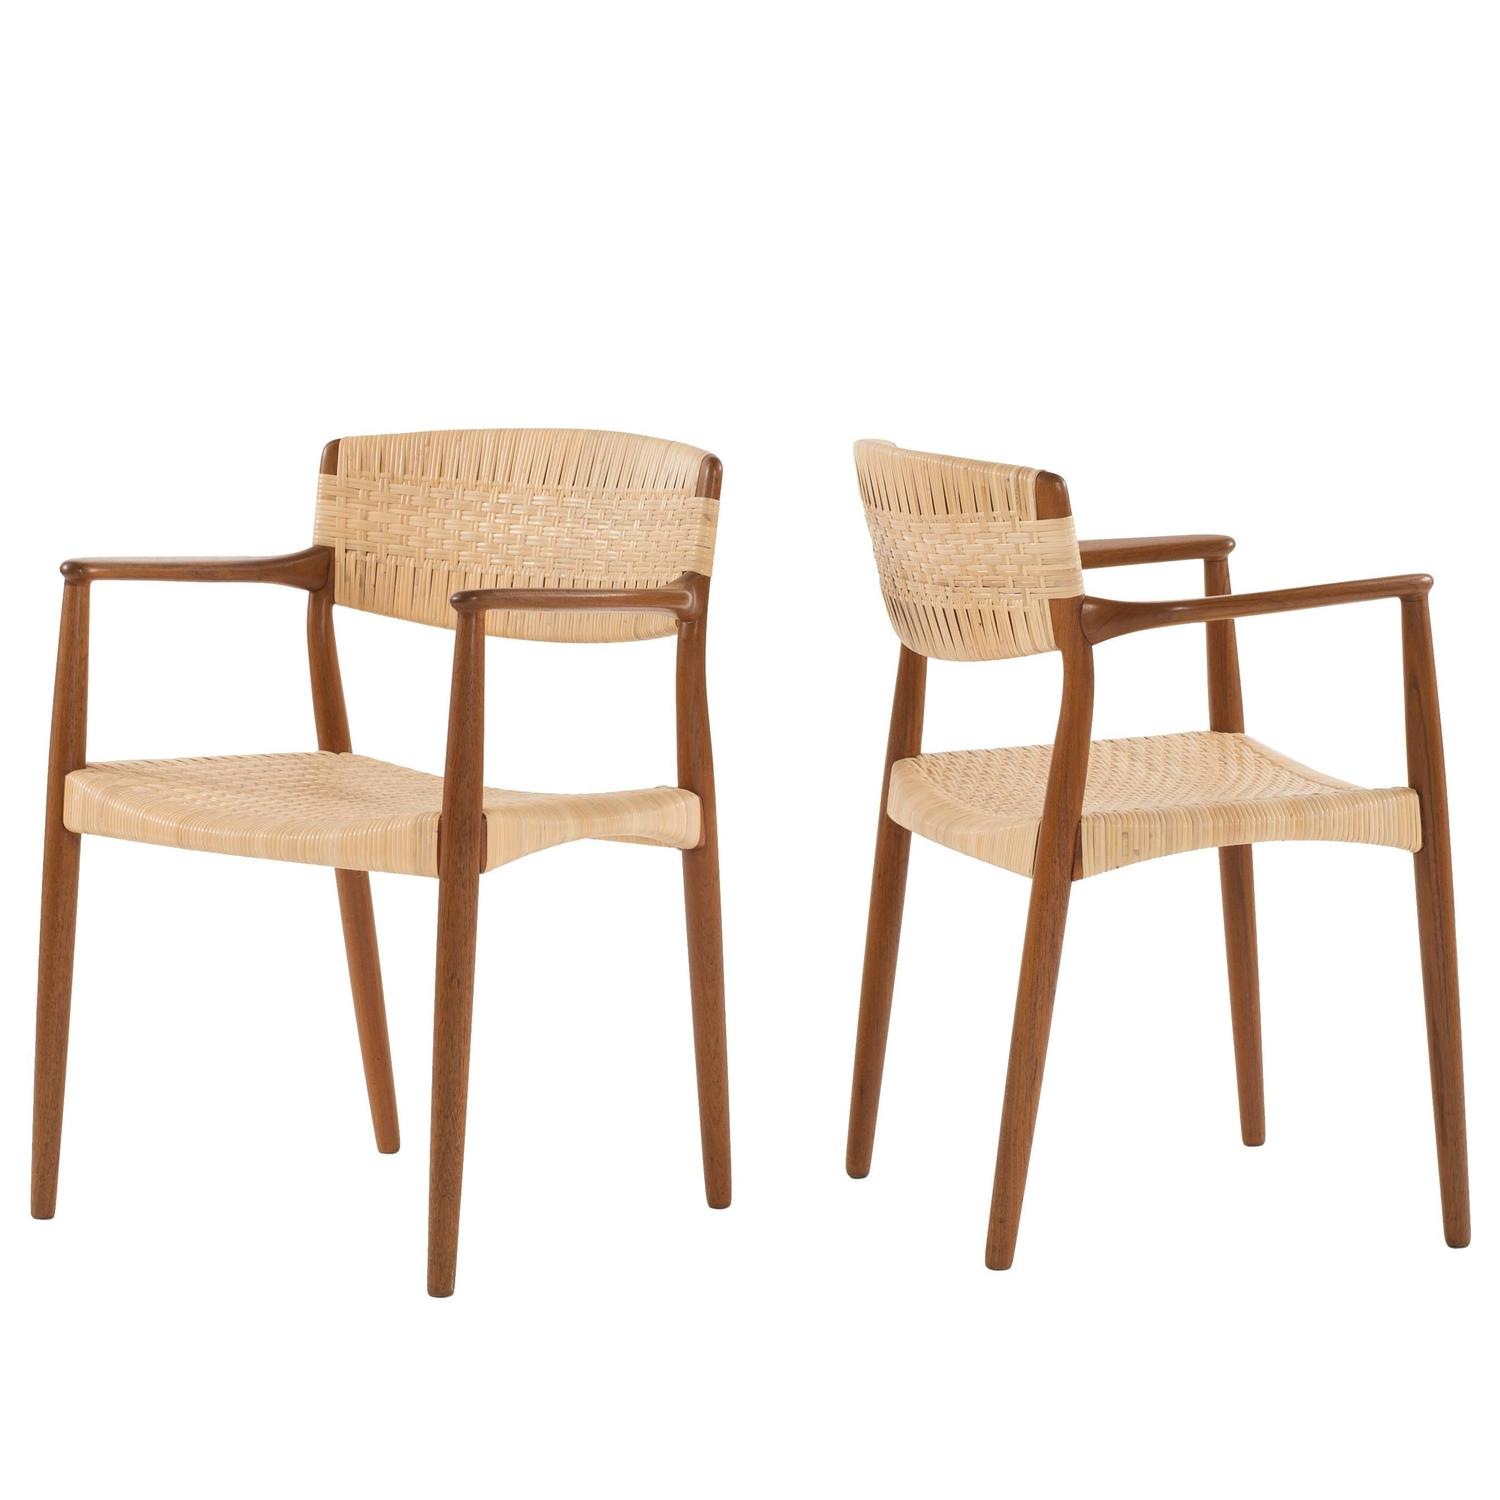 Attractive Set Of 8 Armchairs By Ejner Larsen And Aksel Bender Madsen For Willy Beck  For Sale At 1stdibs